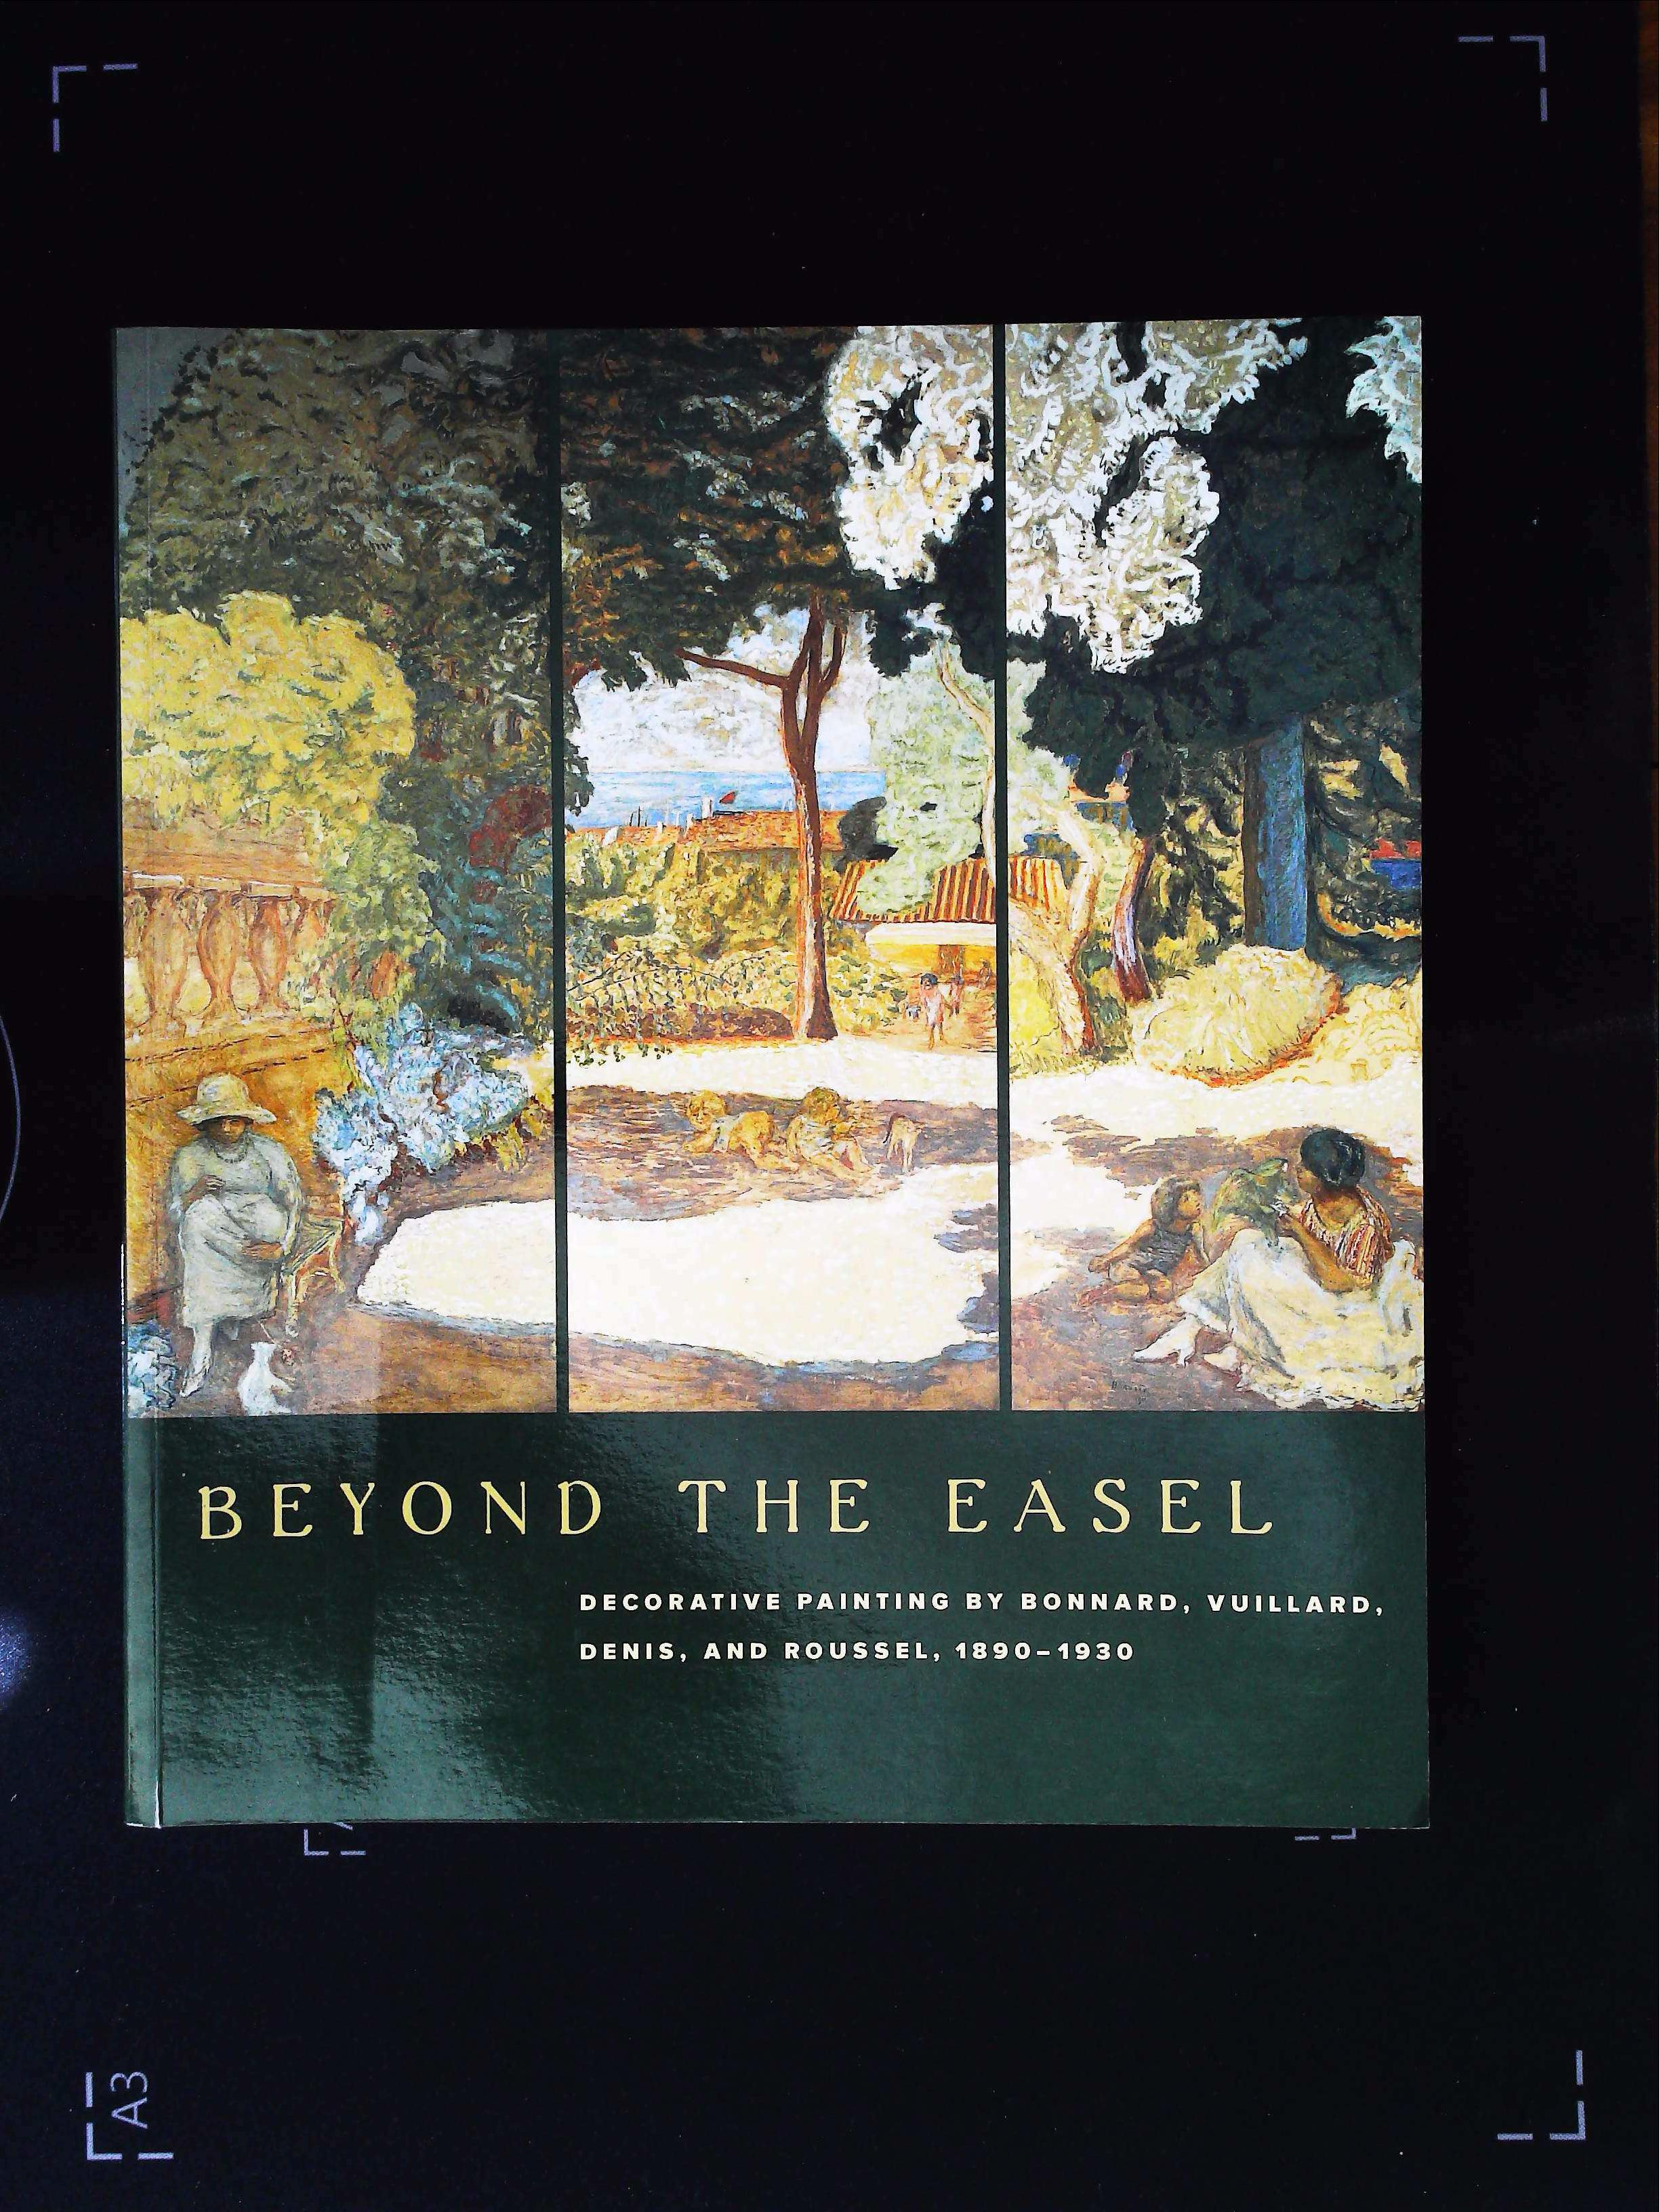 Beyond The Easel Decorative Painting By Bonnard. Vuillard, Denis And Roussel 1890-1930 paperback